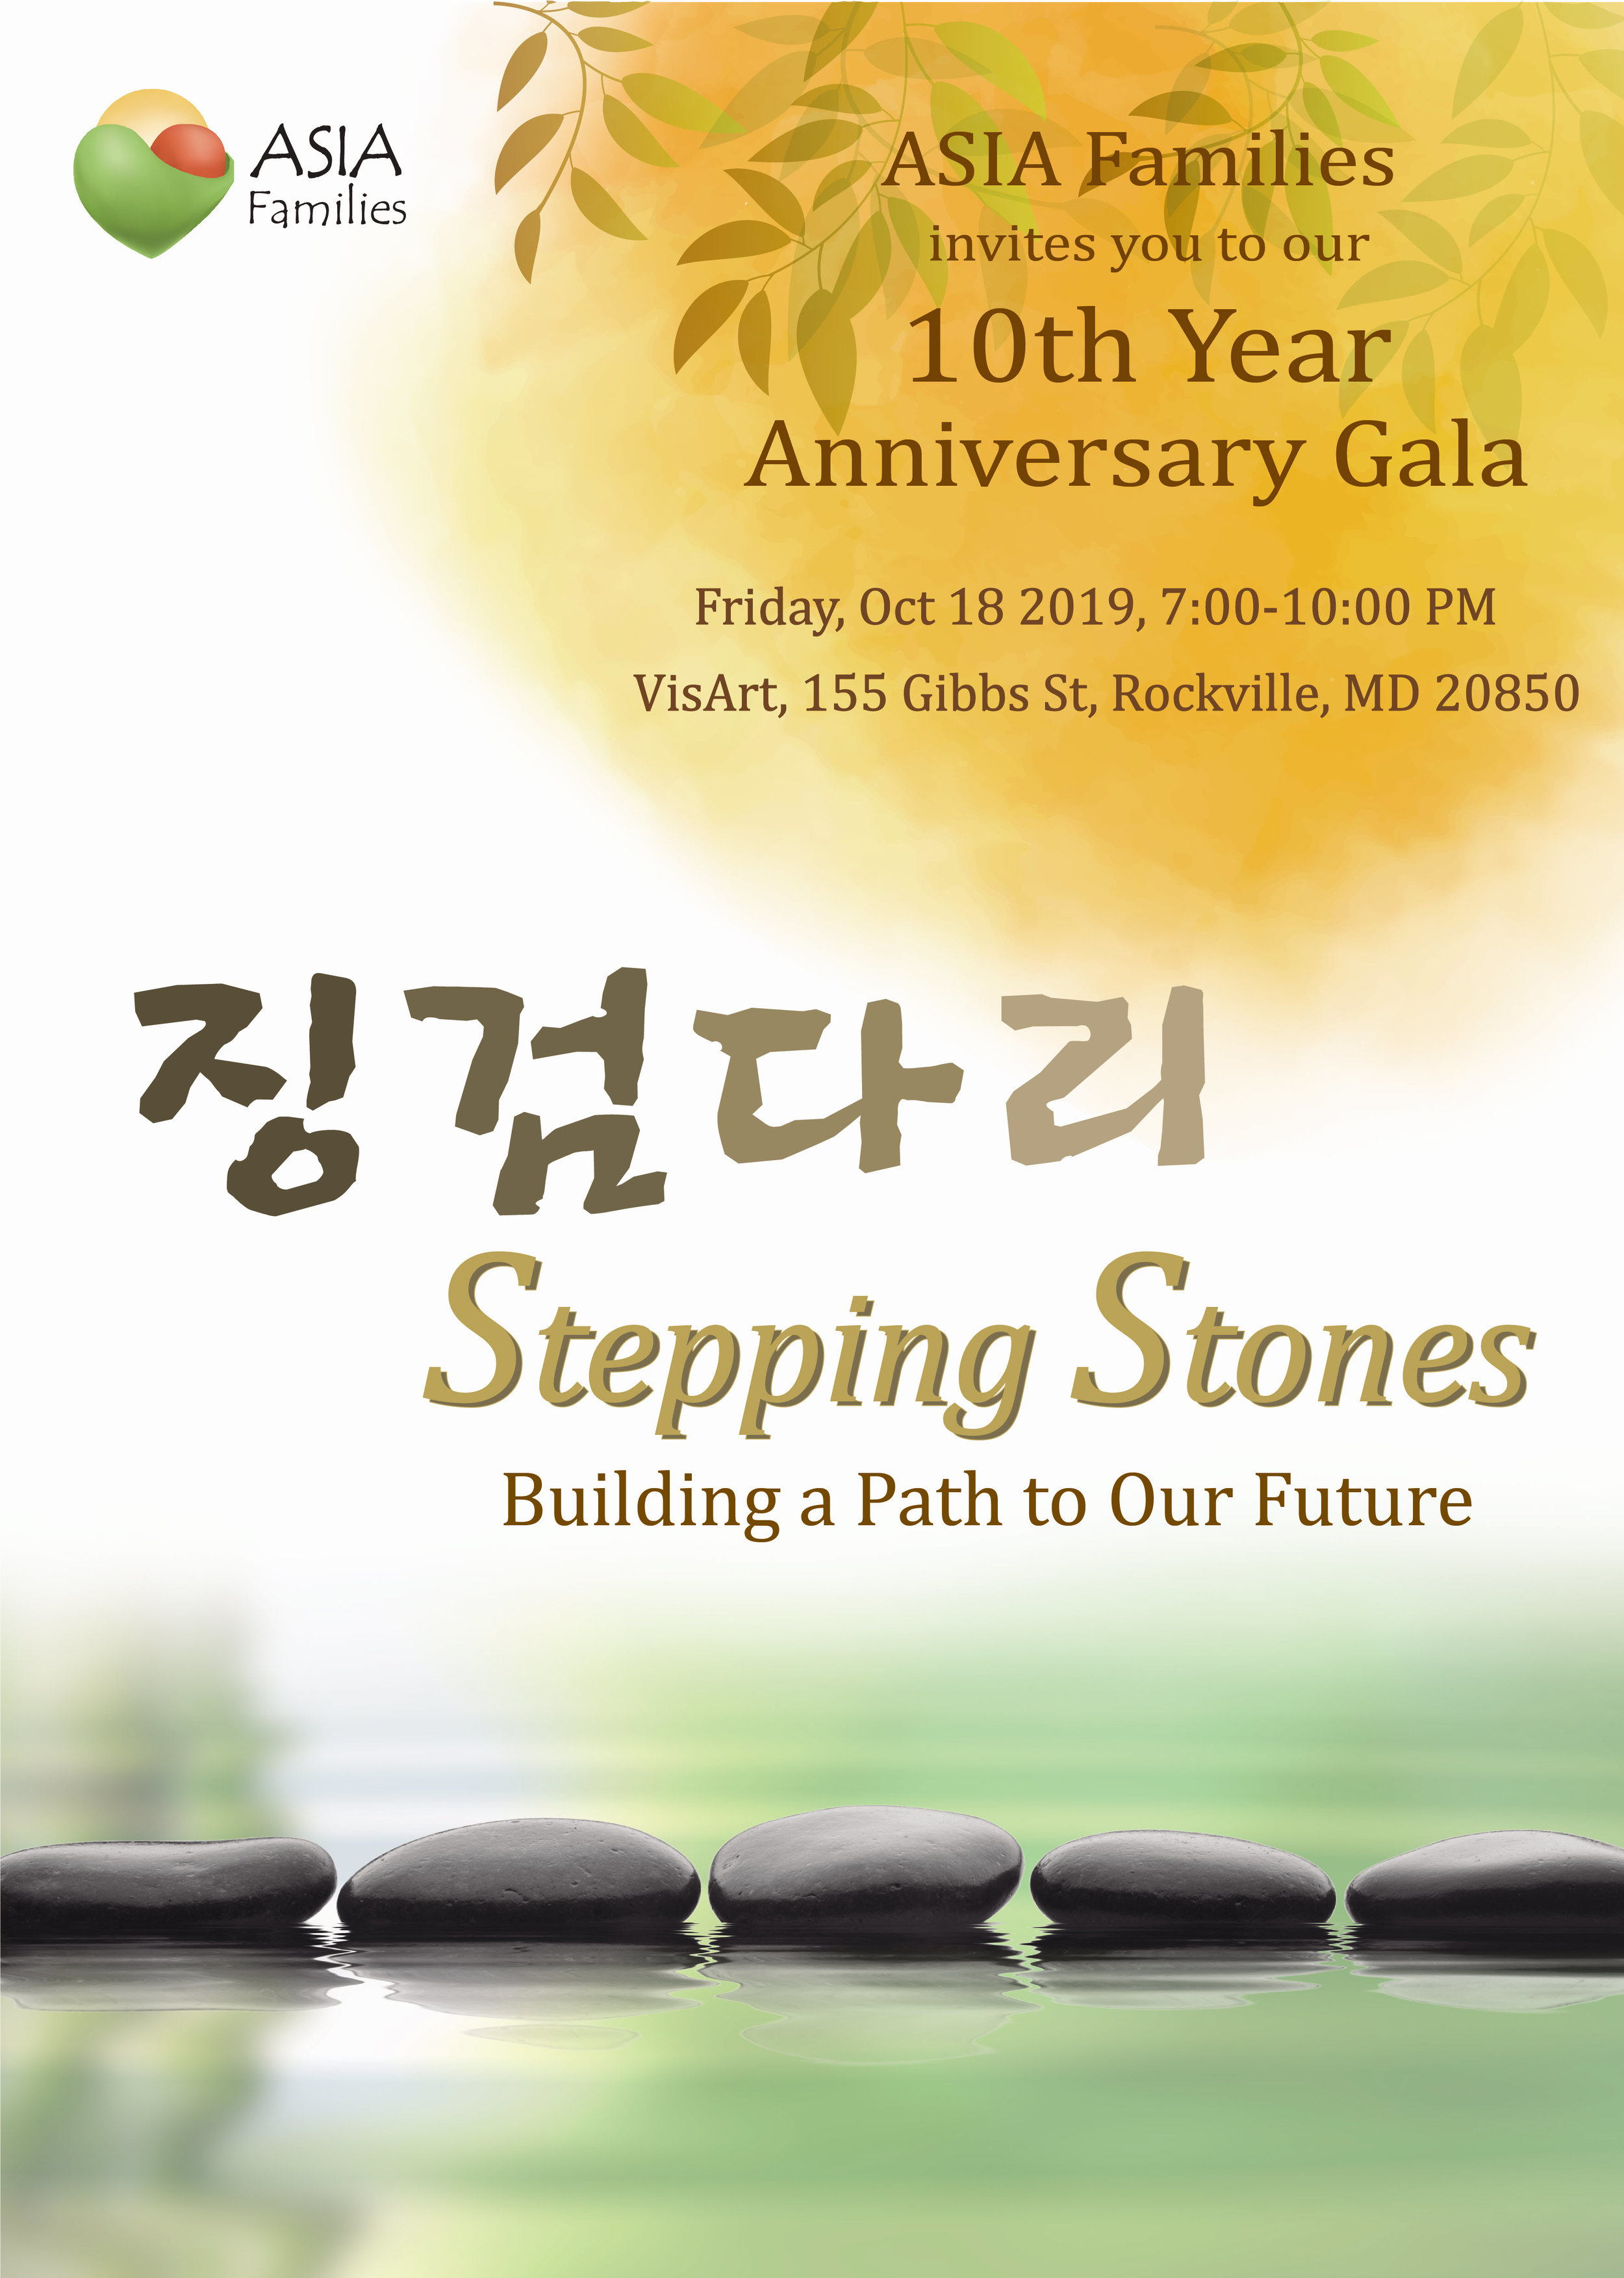 ASIA Families Invites you to our 10th year anniversary Gala, Friday, October 18, 2019, 7:00-10:00 p.m. The Theme is Stepping Stones: Building a Path to Our Future